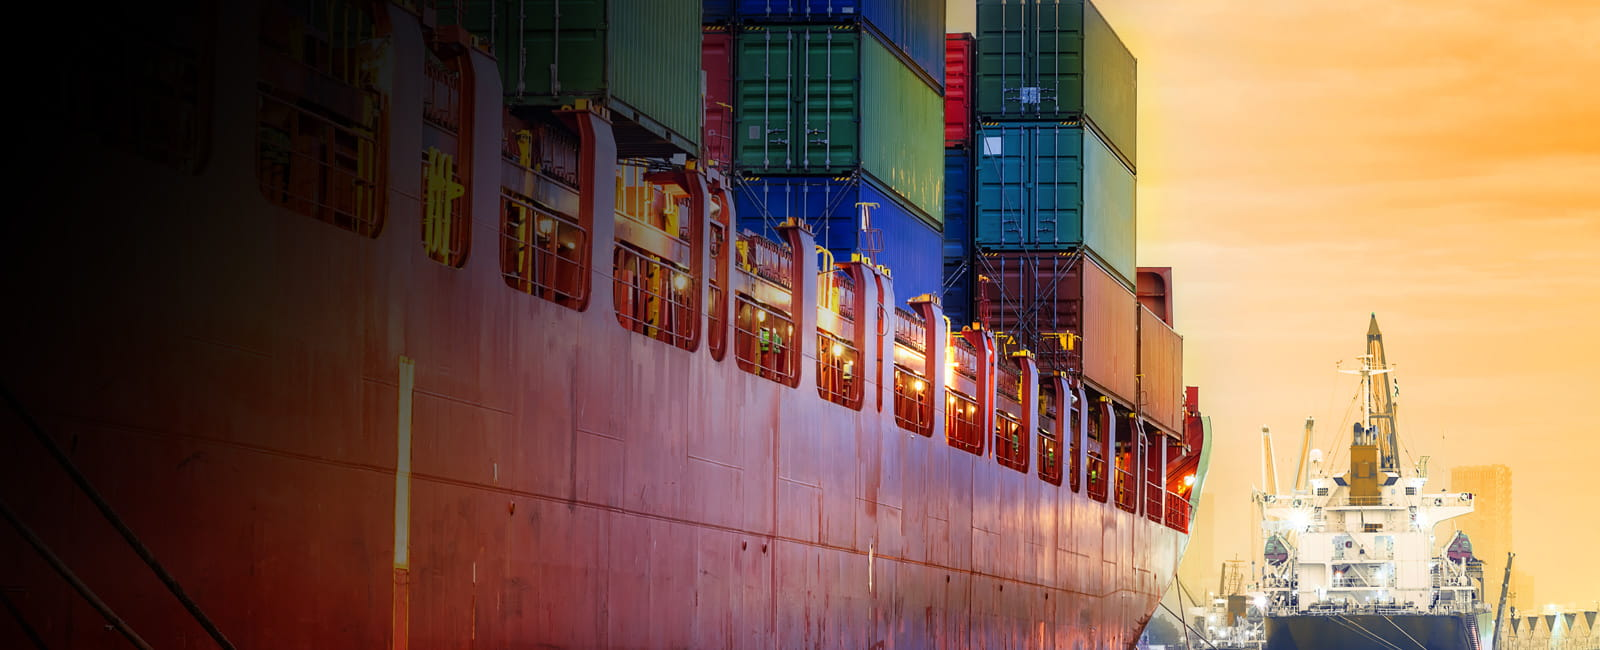 A fully loaded container ship at the dock at sunset